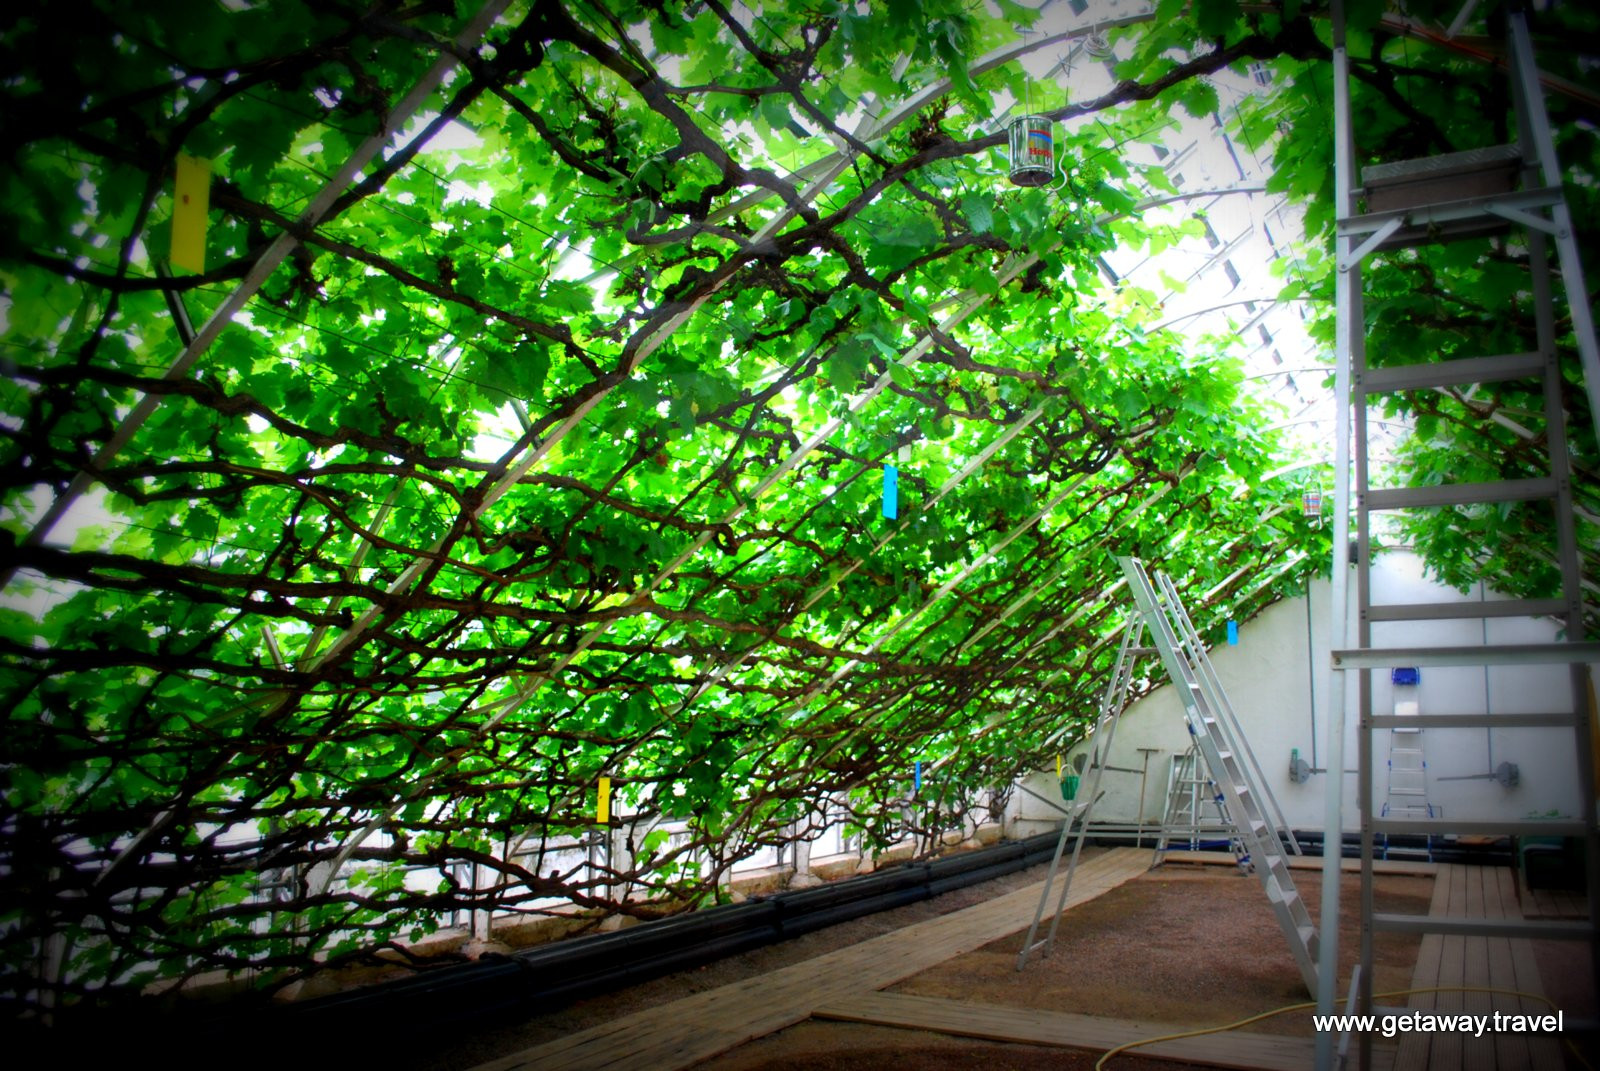 Largest Grape Vine In The World Getaway Travel Llc